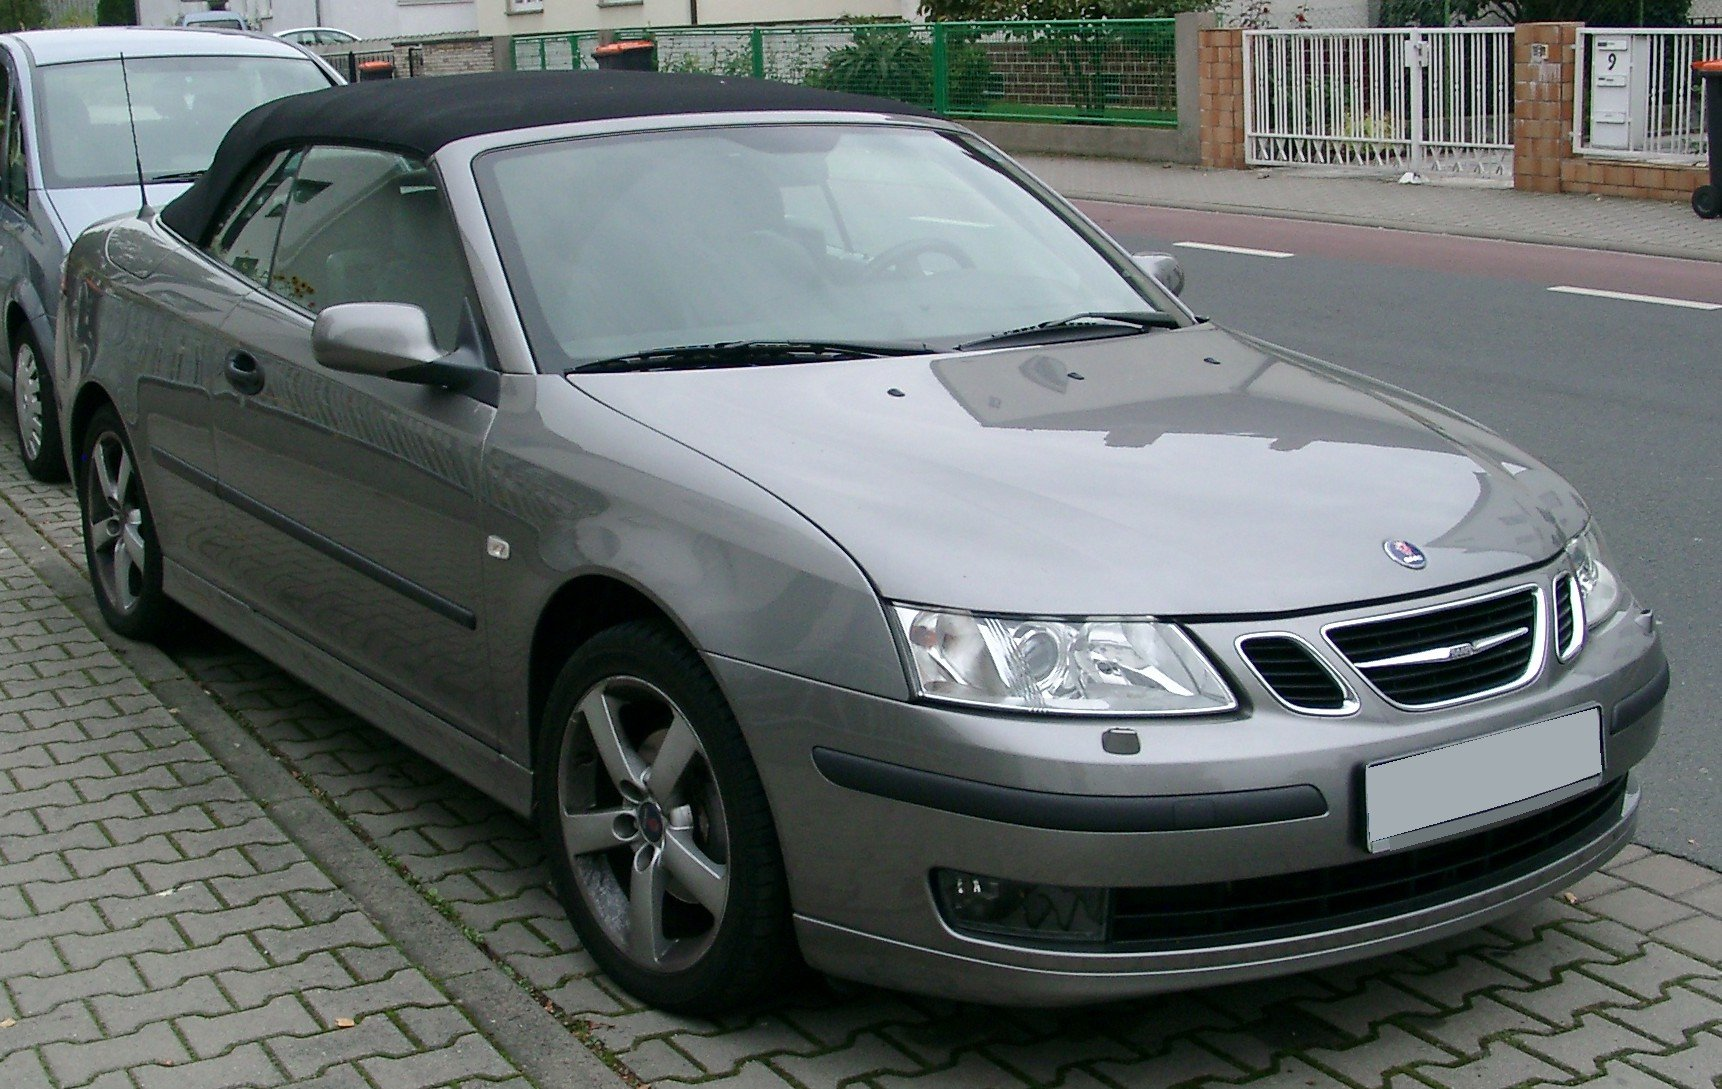 2000 saab 9 3 cabriolet pictures information and specs auto. Black Bedroom Furniture Sets. Home Design Ideas